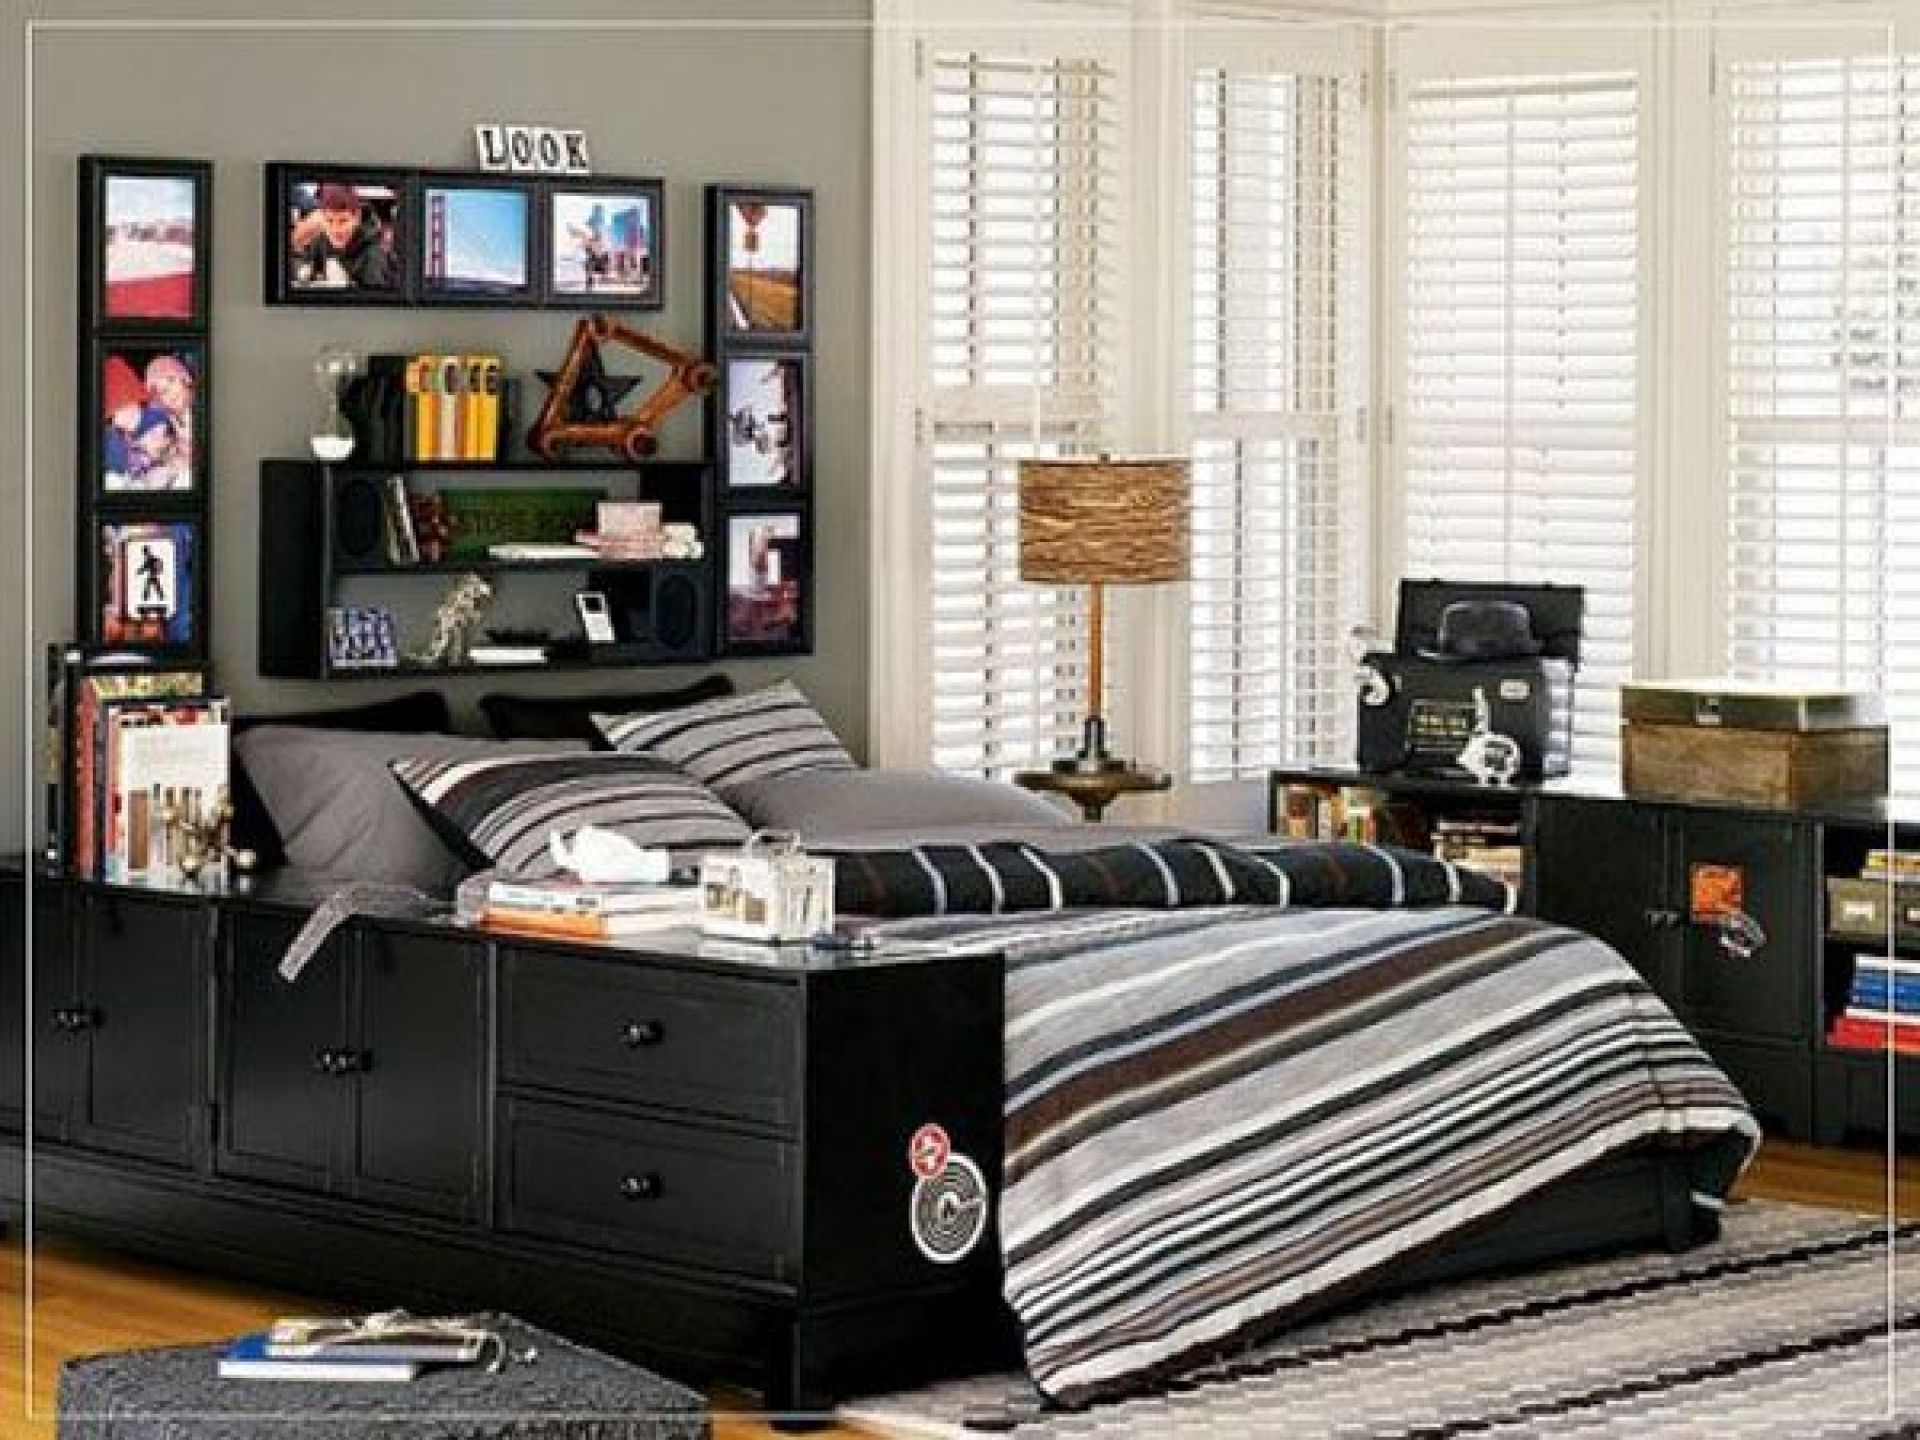 Cool Room Ideas For Teenagers Glamorous Bedroom Ideas For Teenage Guys With Small Rooms  Google Search . 2017